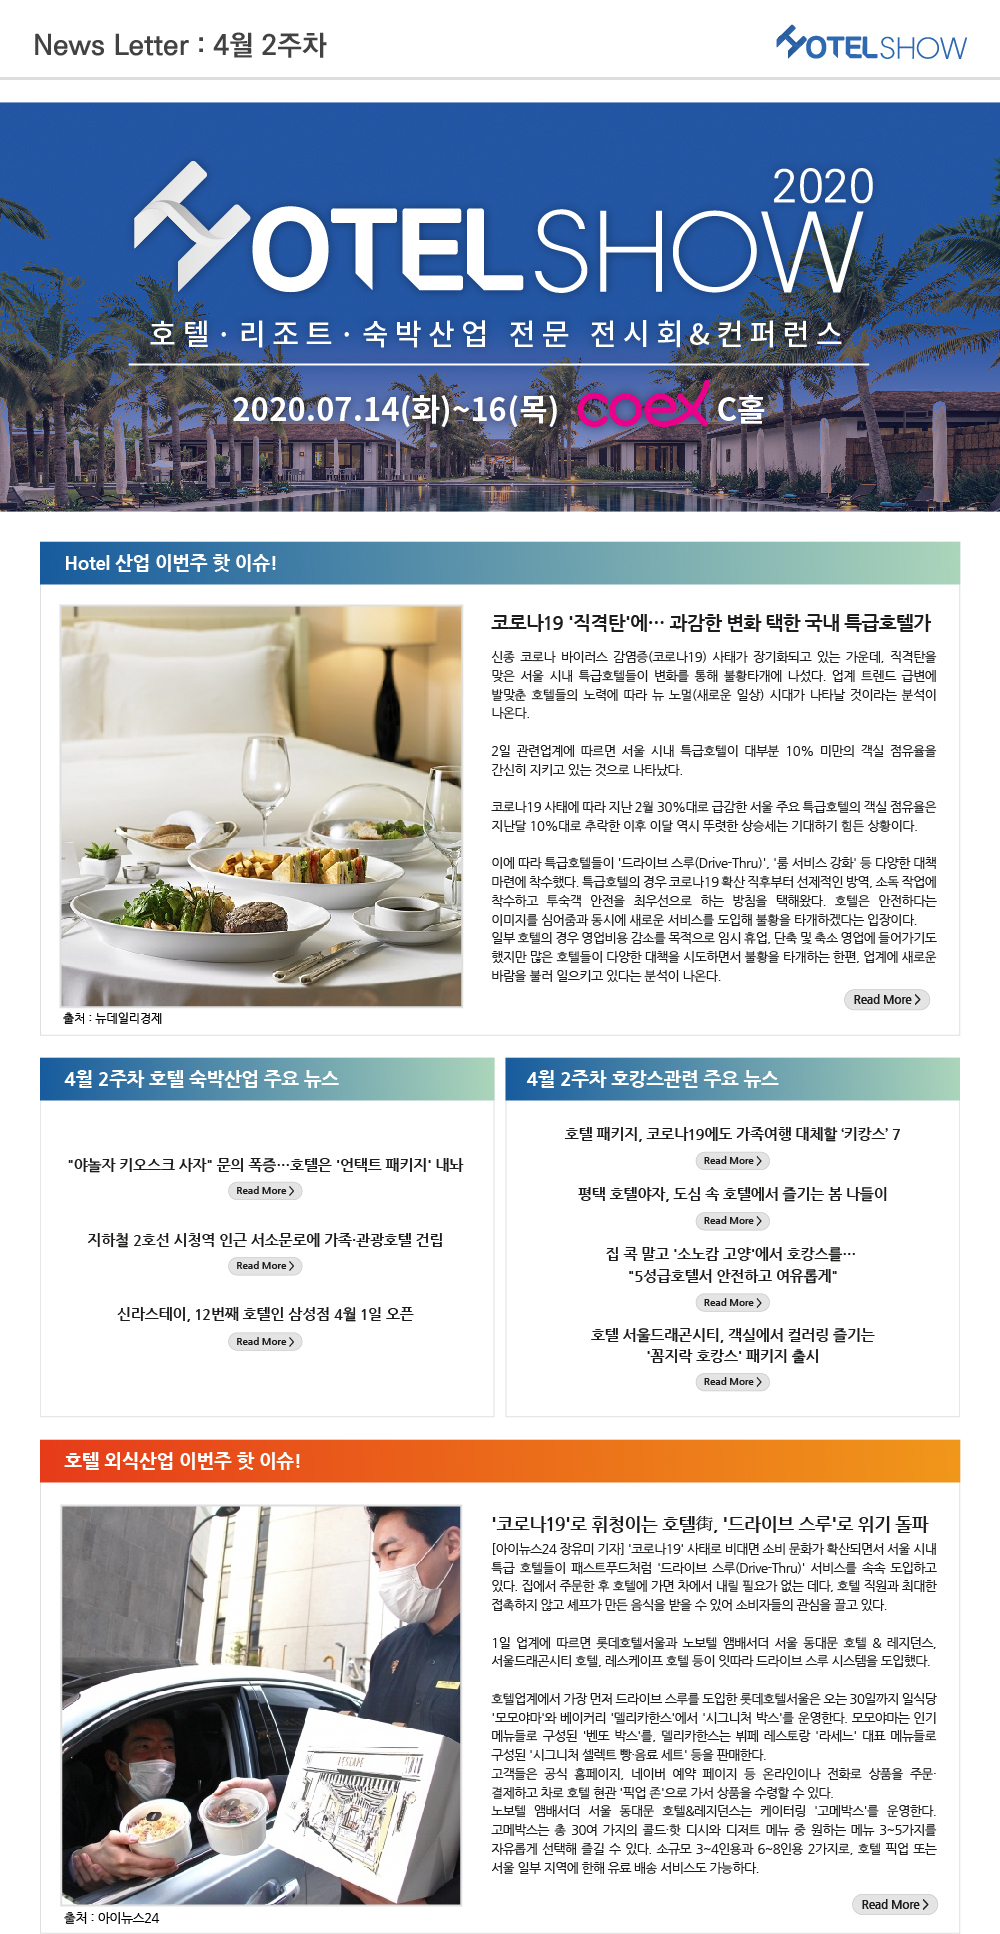 http://www.hotelshow.co.kr//img_up/shop_pds/hotelshow/design/newsletter/4-21.jpg